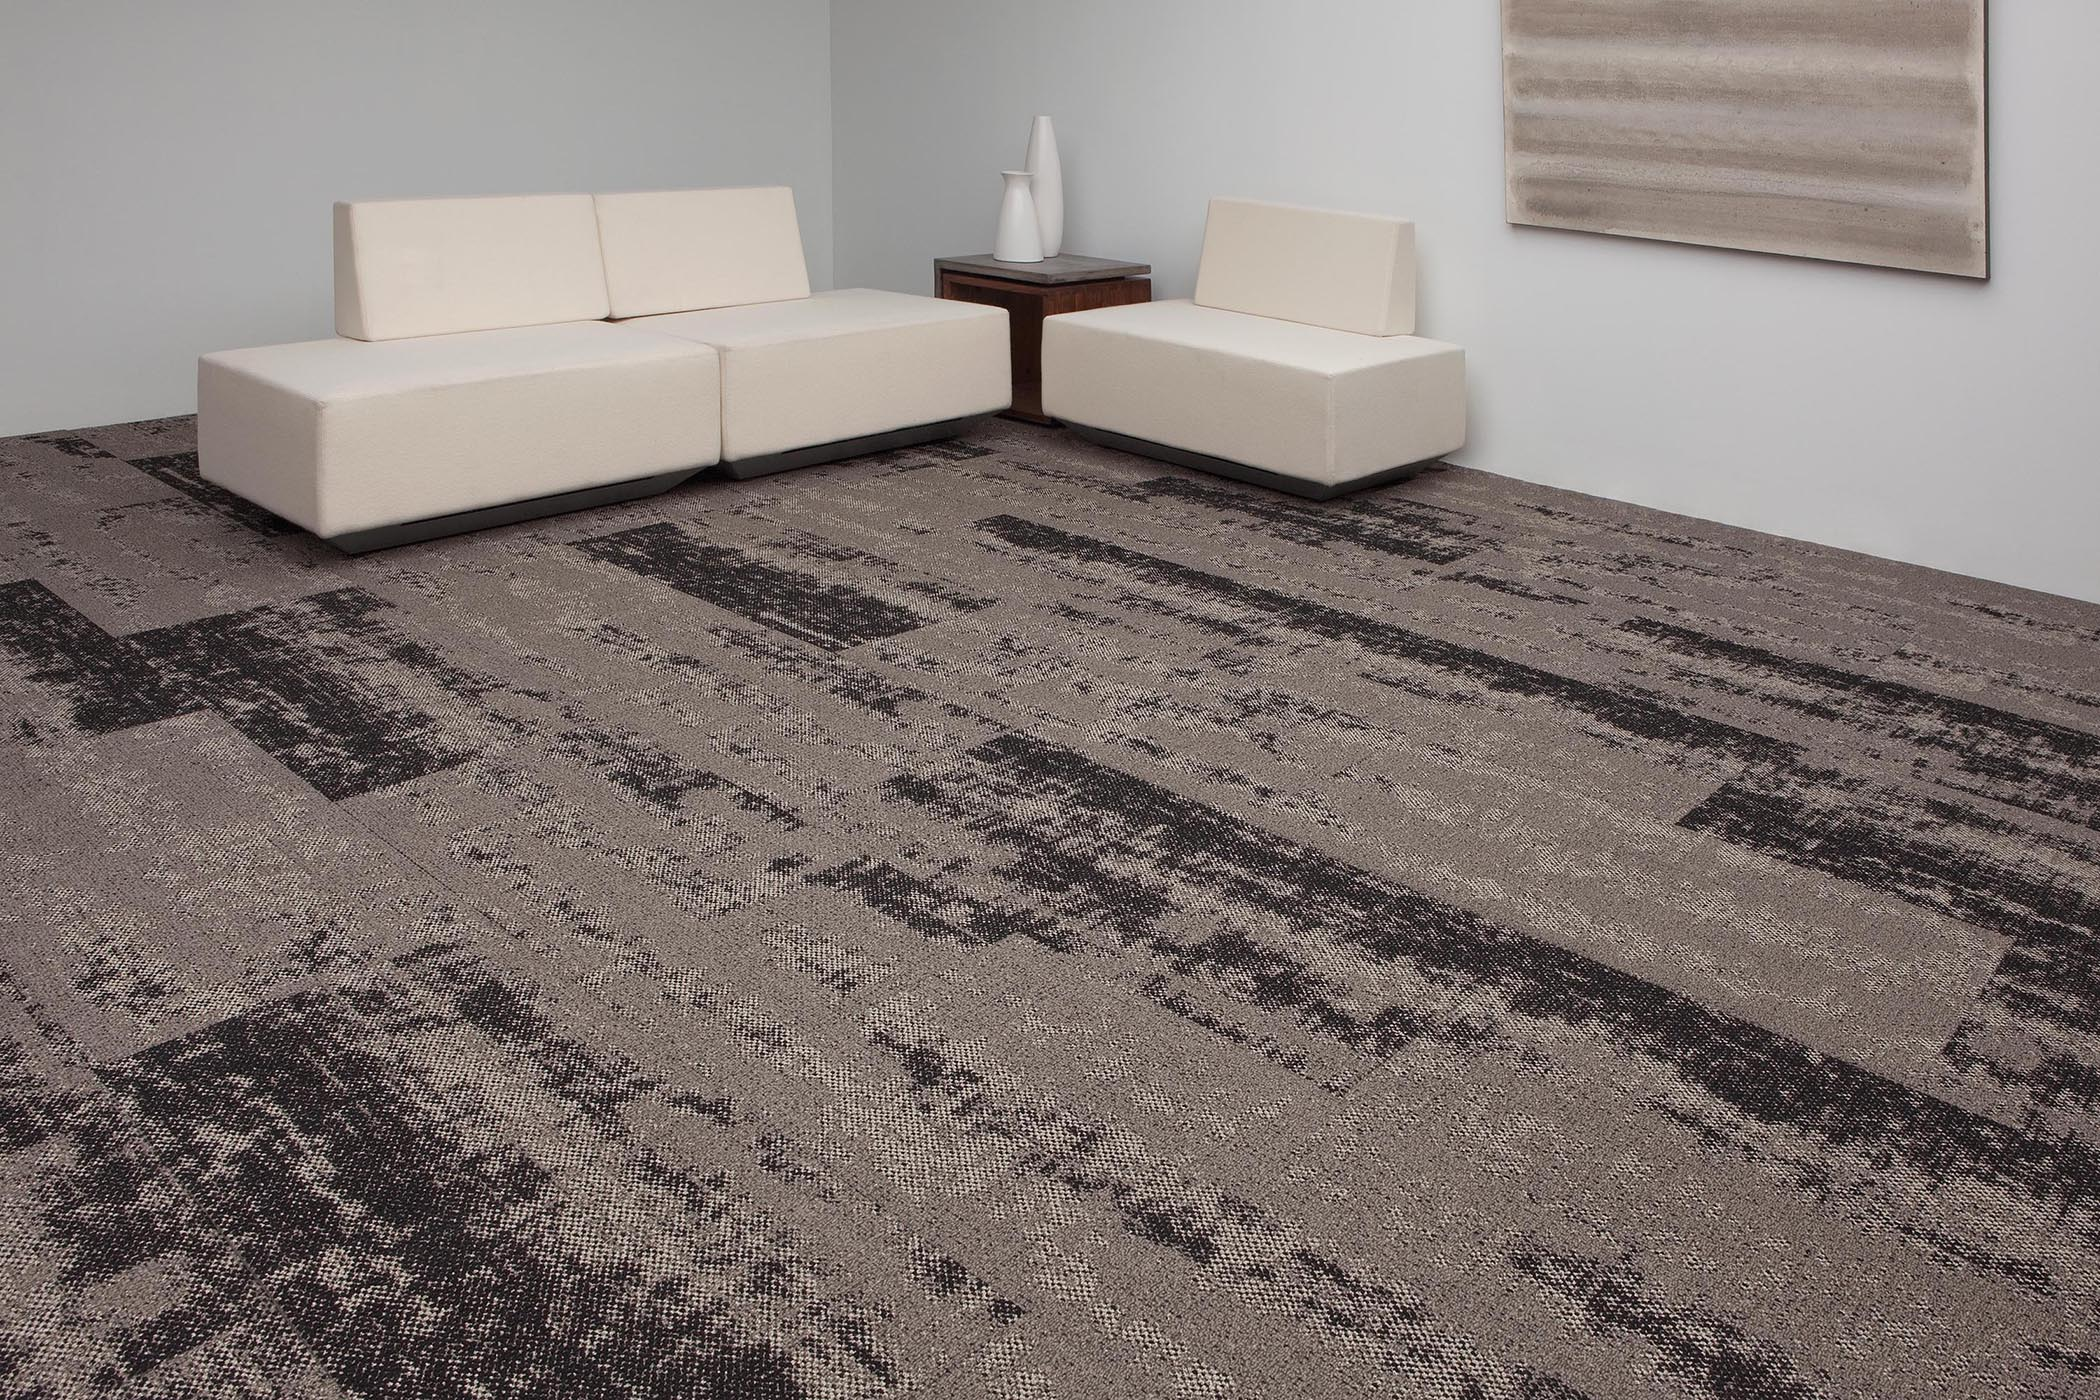 ... fabulous best carpets at efdafffbedbafdb ... AJCLJIN